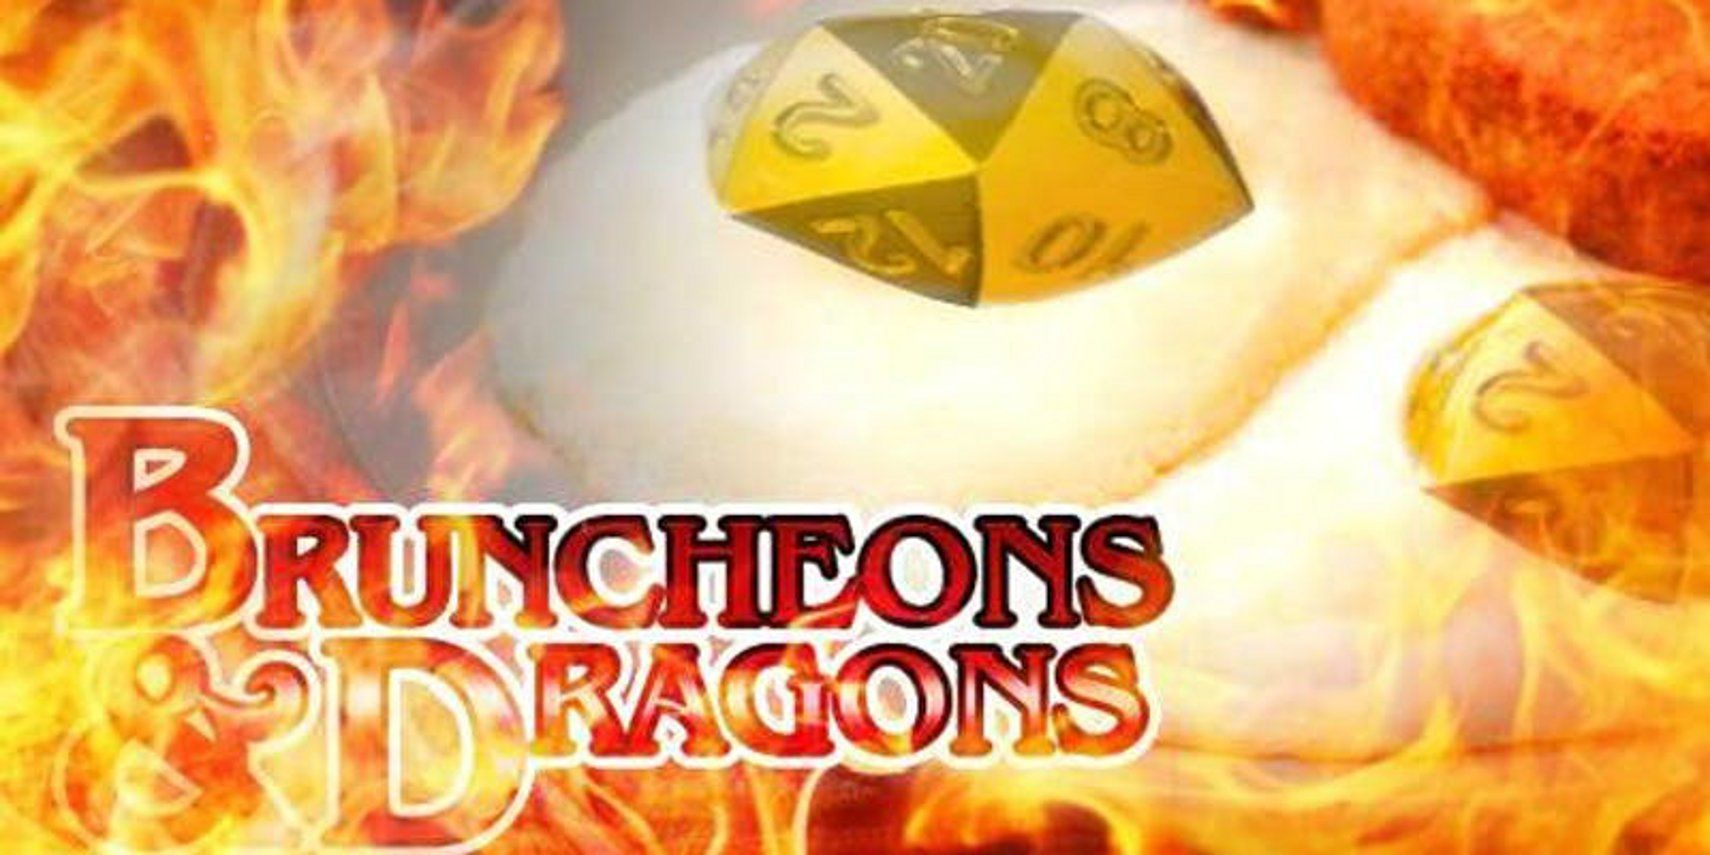 Bruncheons & Dragons Are You New Sunday Plans | TheGamer